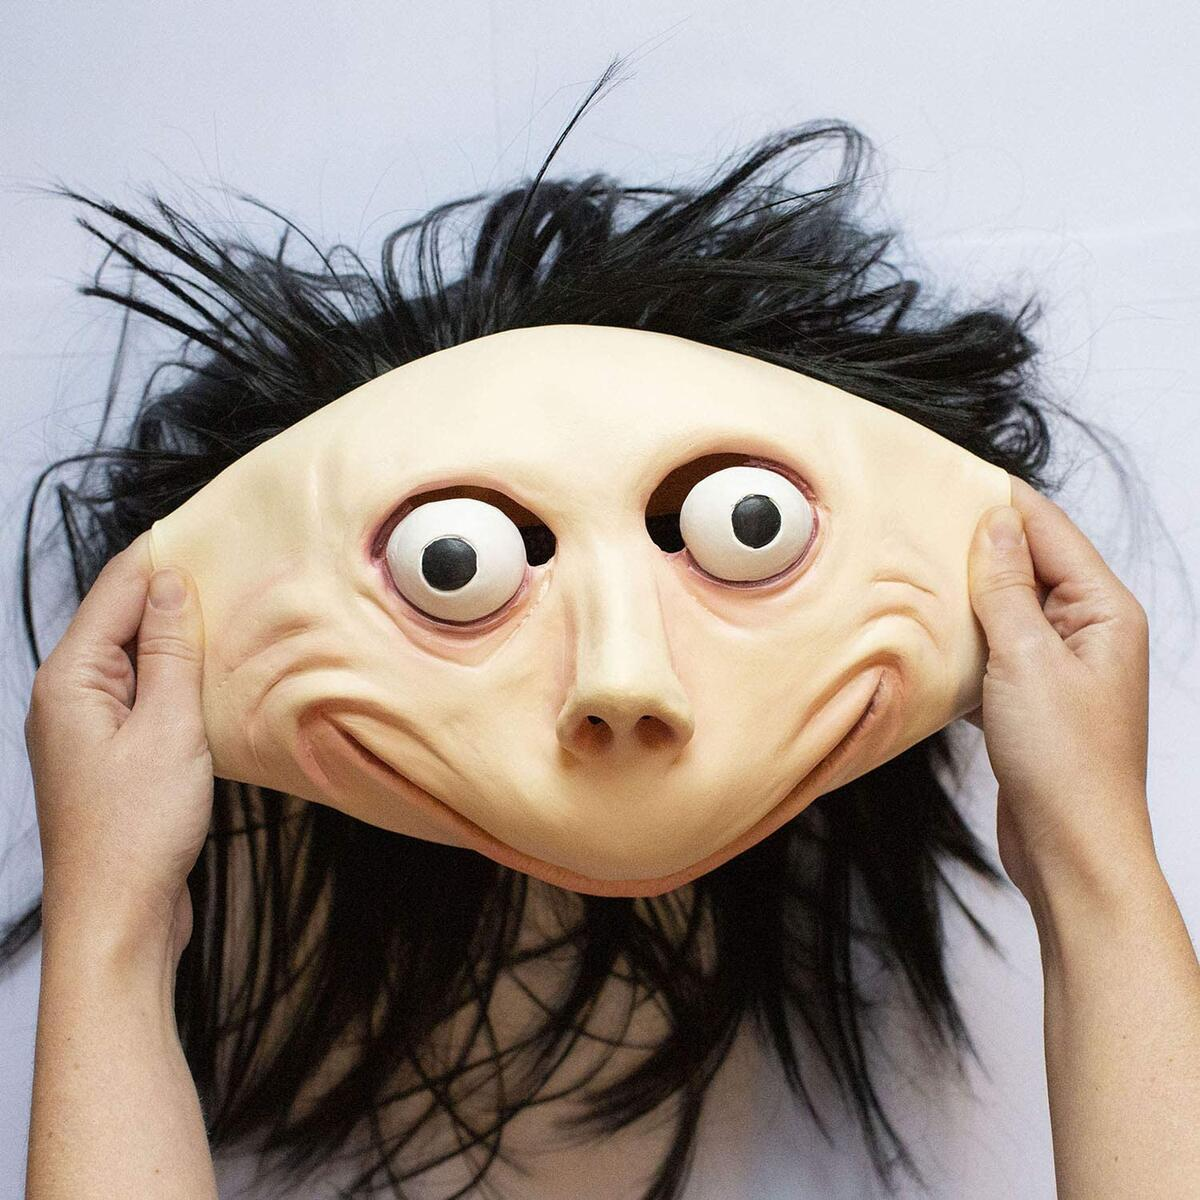 MOMO Halloween MASK Props - Creepy Horror Scary Latex Realistic Full Head with Wig Cosplay Costume Mask Decoration Party (Momo)